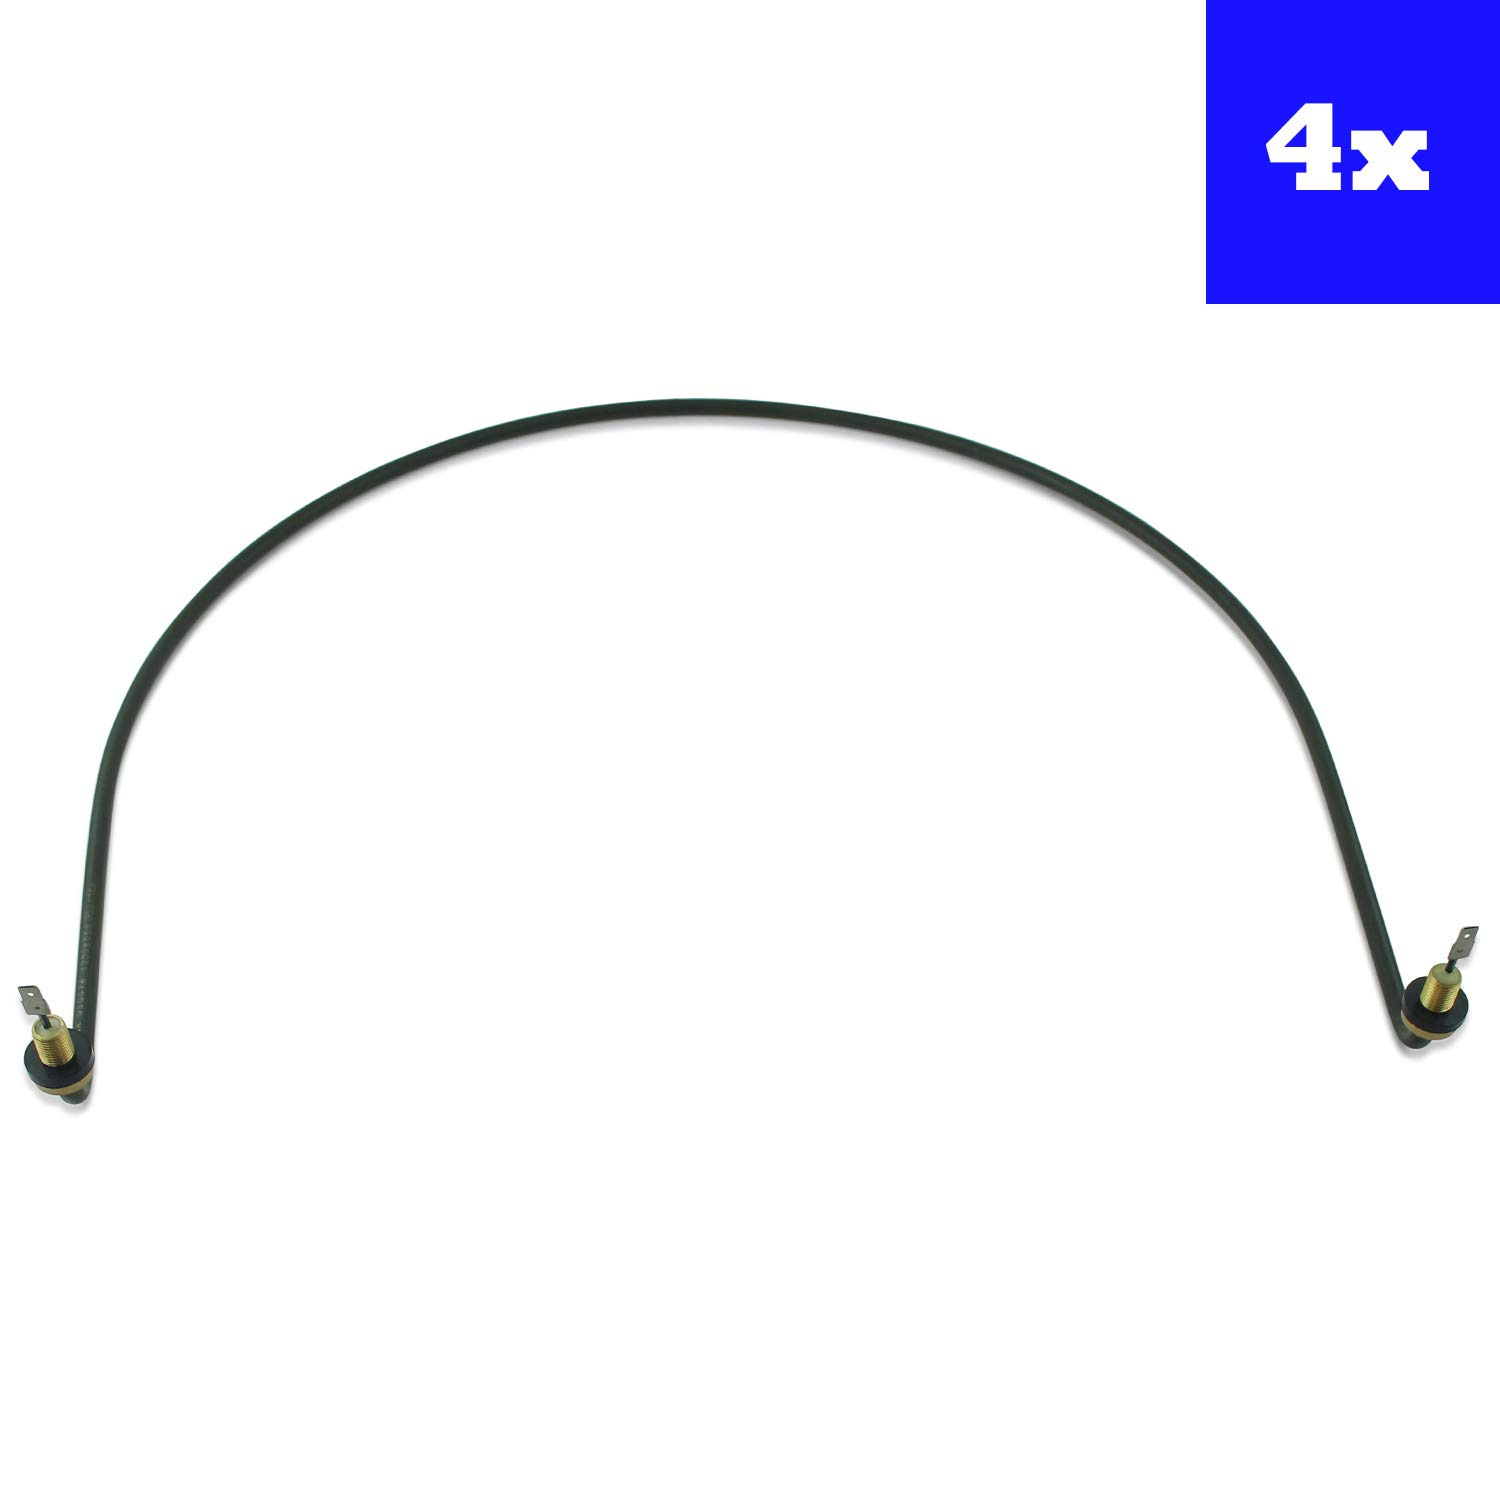 Heating Element For Whirlpool Maytag Dishwasher W10518394 Set of 4